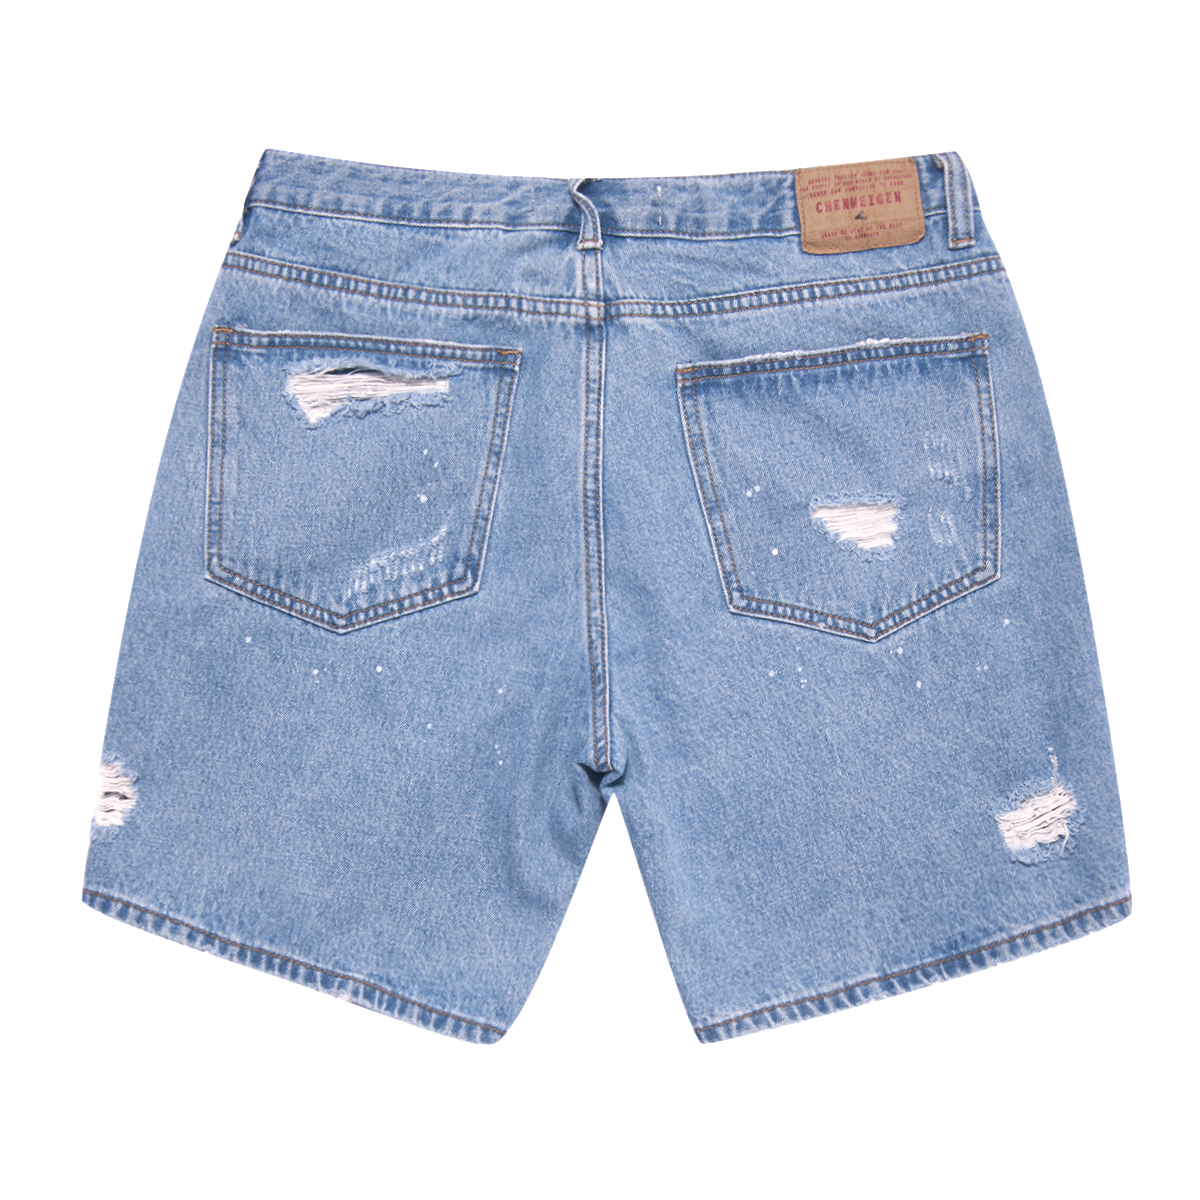 HELLEN&WOODY/H&W Men's Fashion Destroyed Blue Jeans Ripped Destroyed Pants HW1602